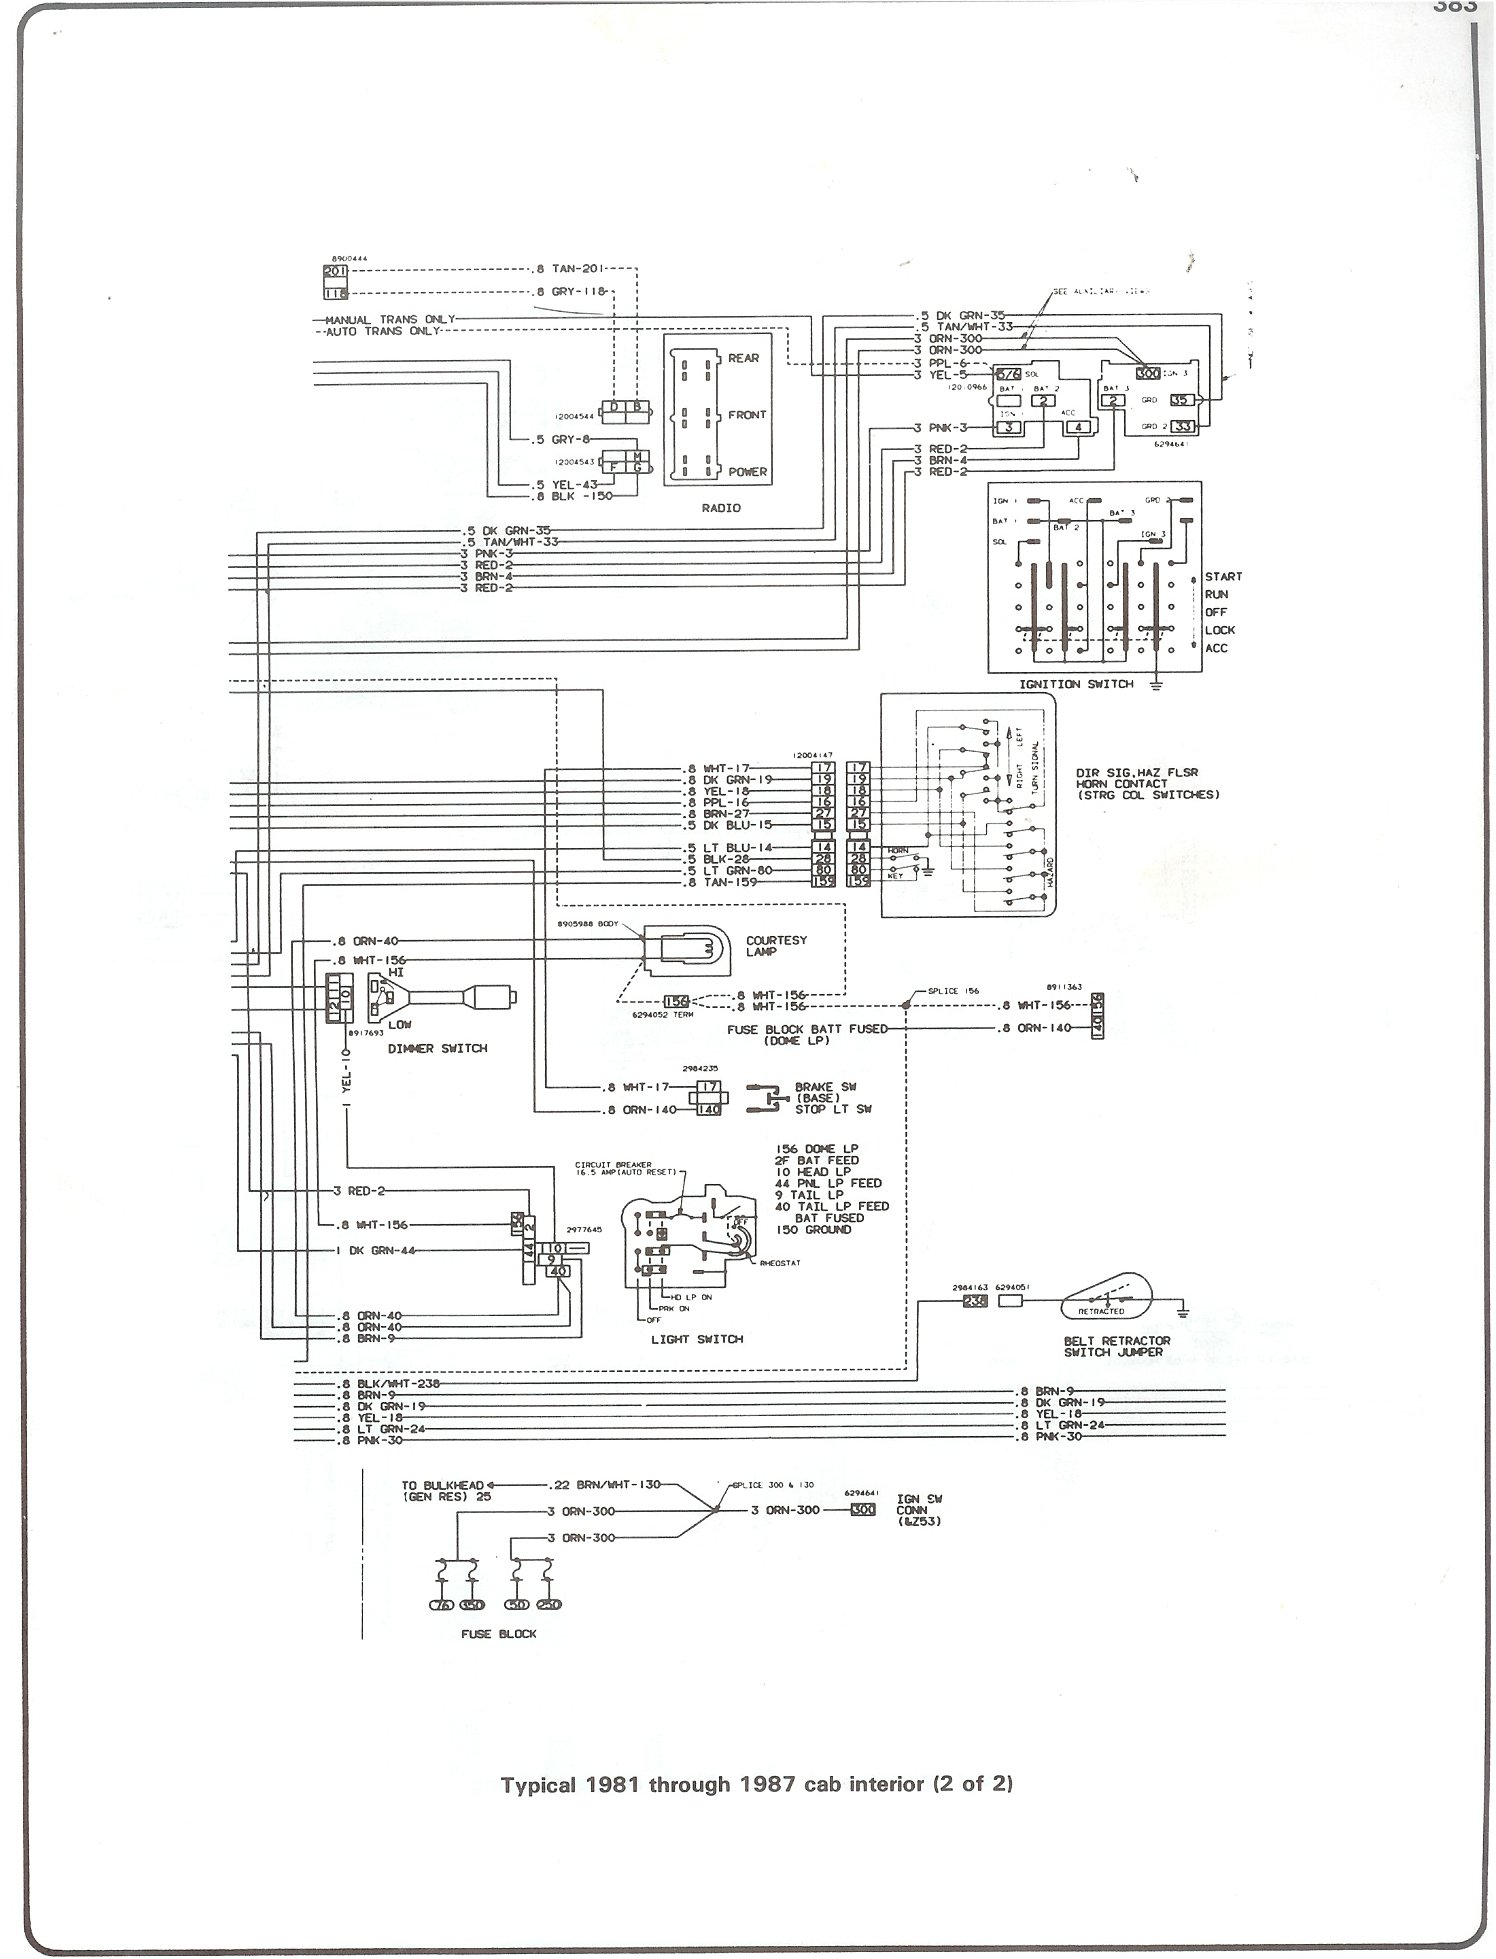 73 Chevy Blazer Wiring Diagram - DIY Wiring Diagrams •